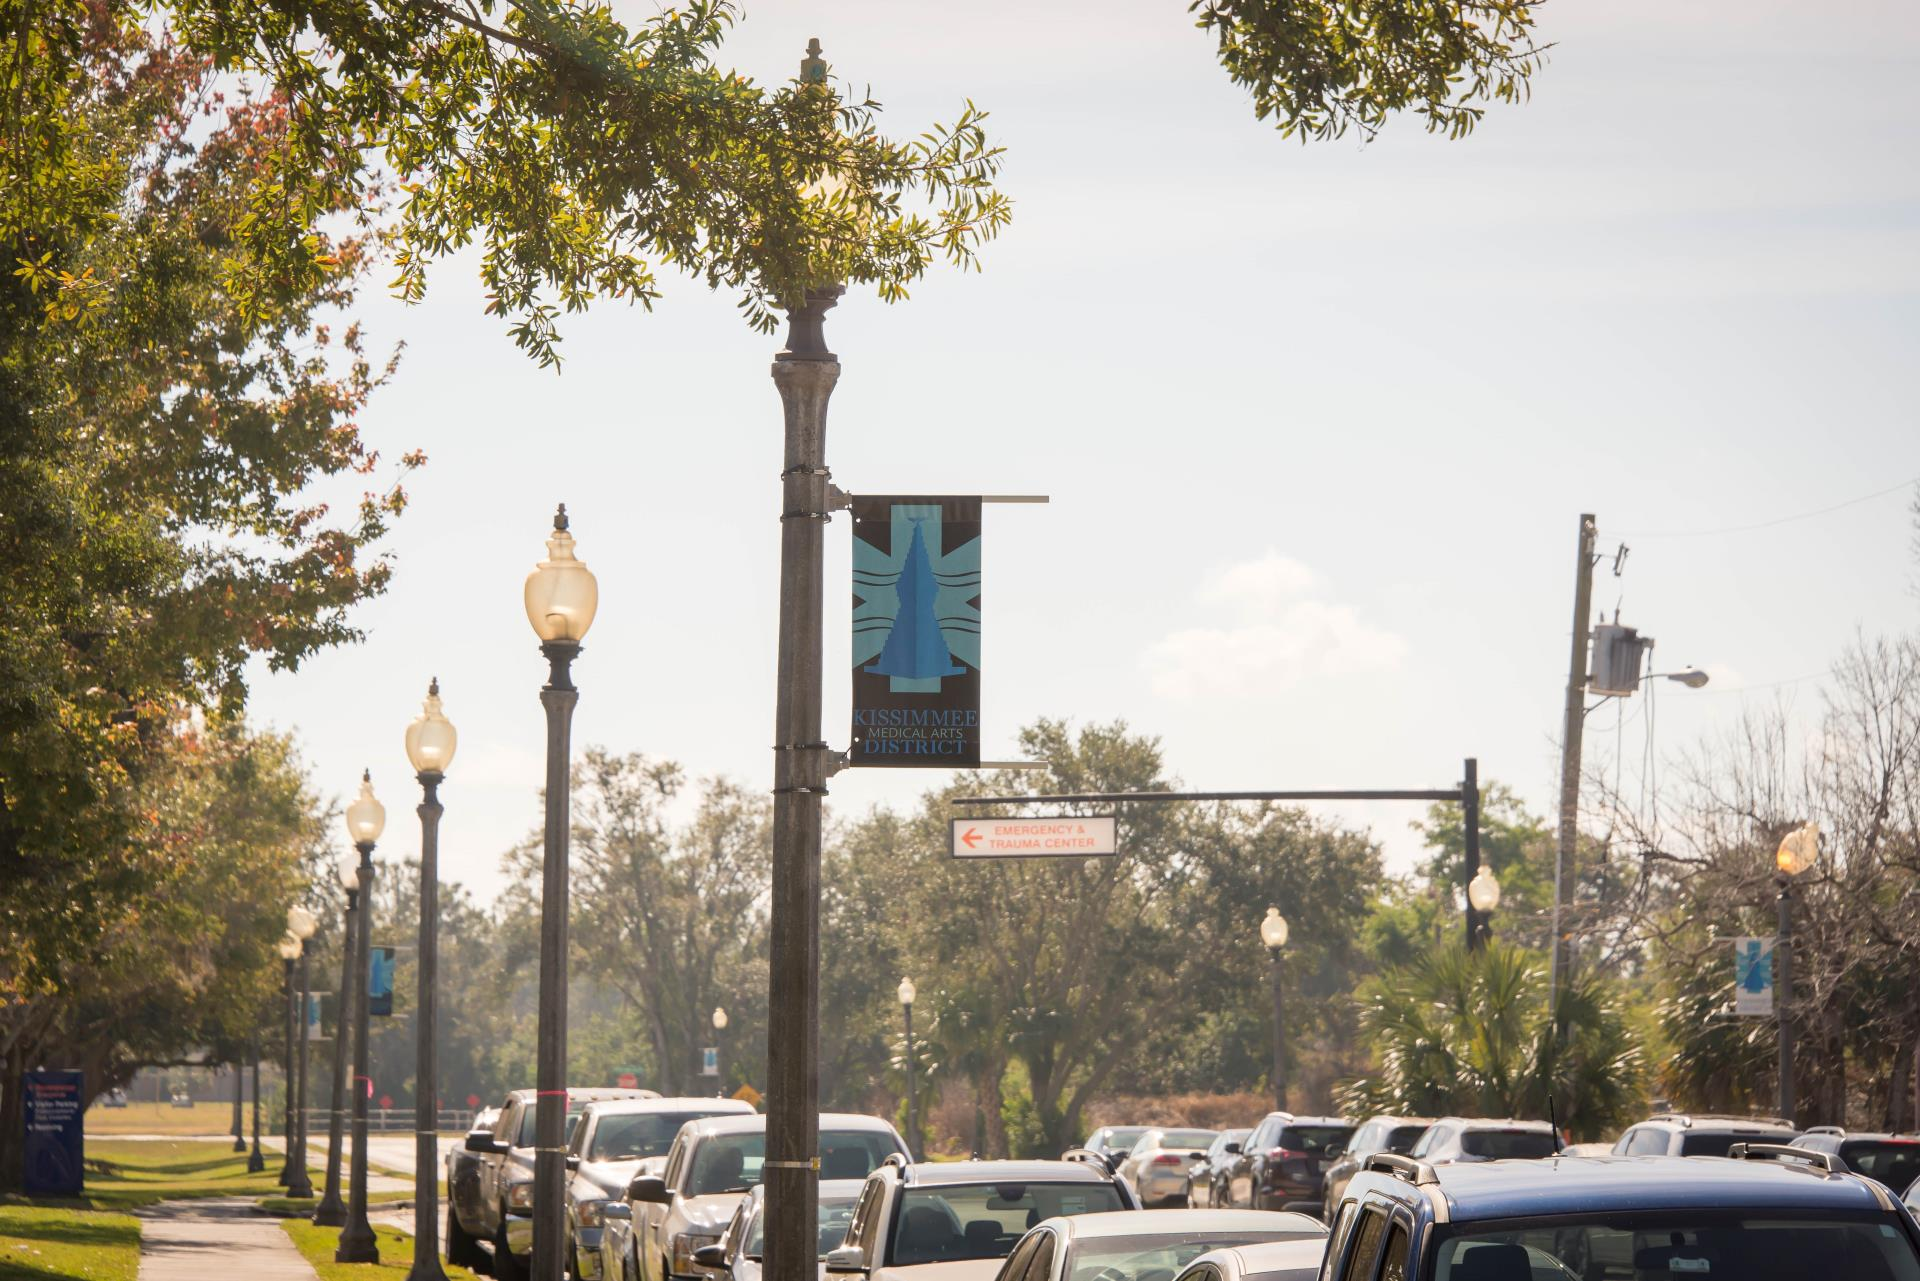 Kissimmee Medical Arts District Banners near Osceola Regional Medical Center